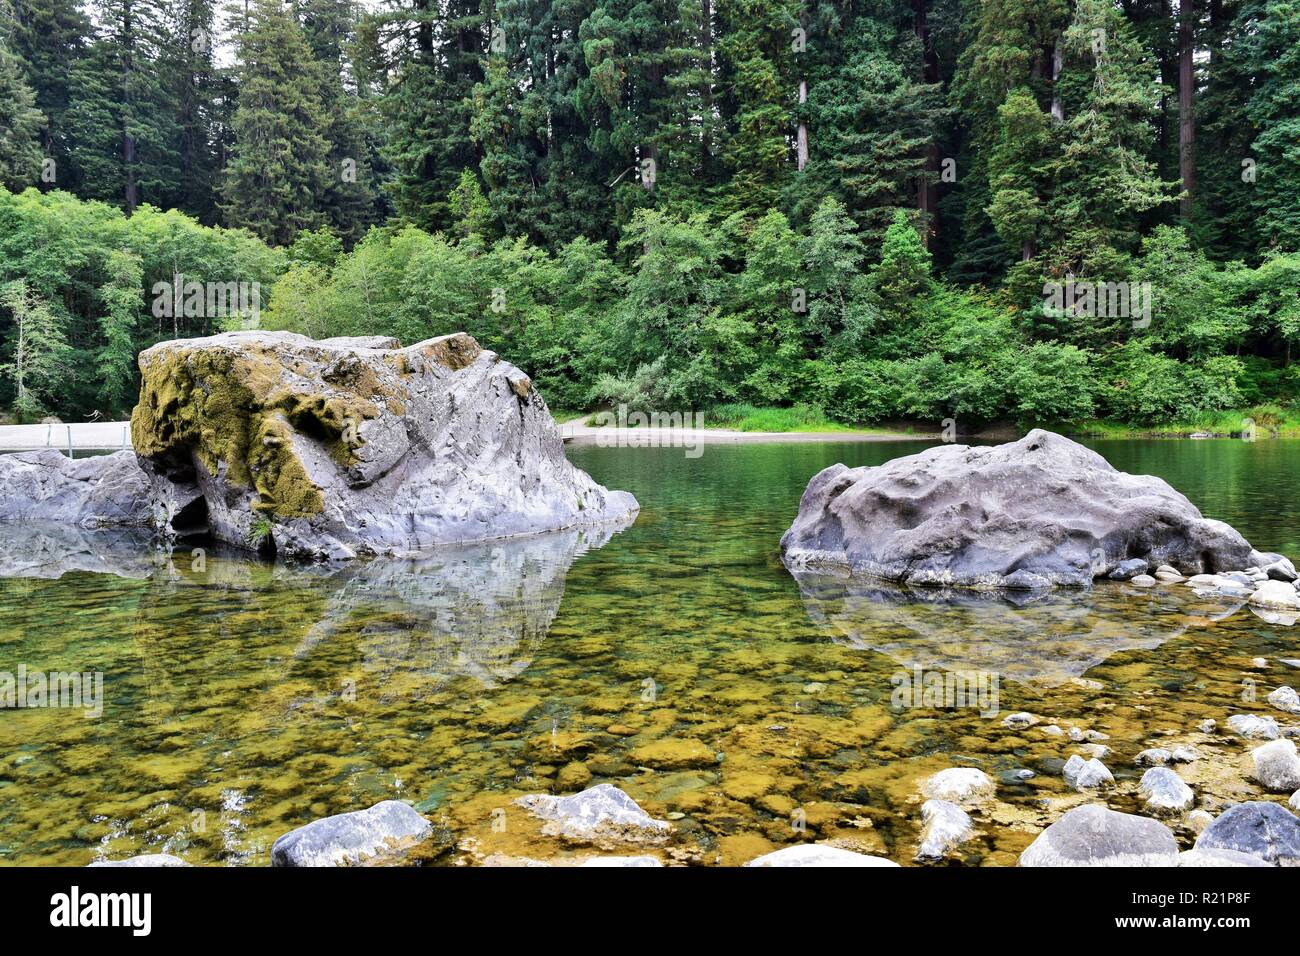 The Smith River at Jedediah Smith Redwoods State Park - Stock Image